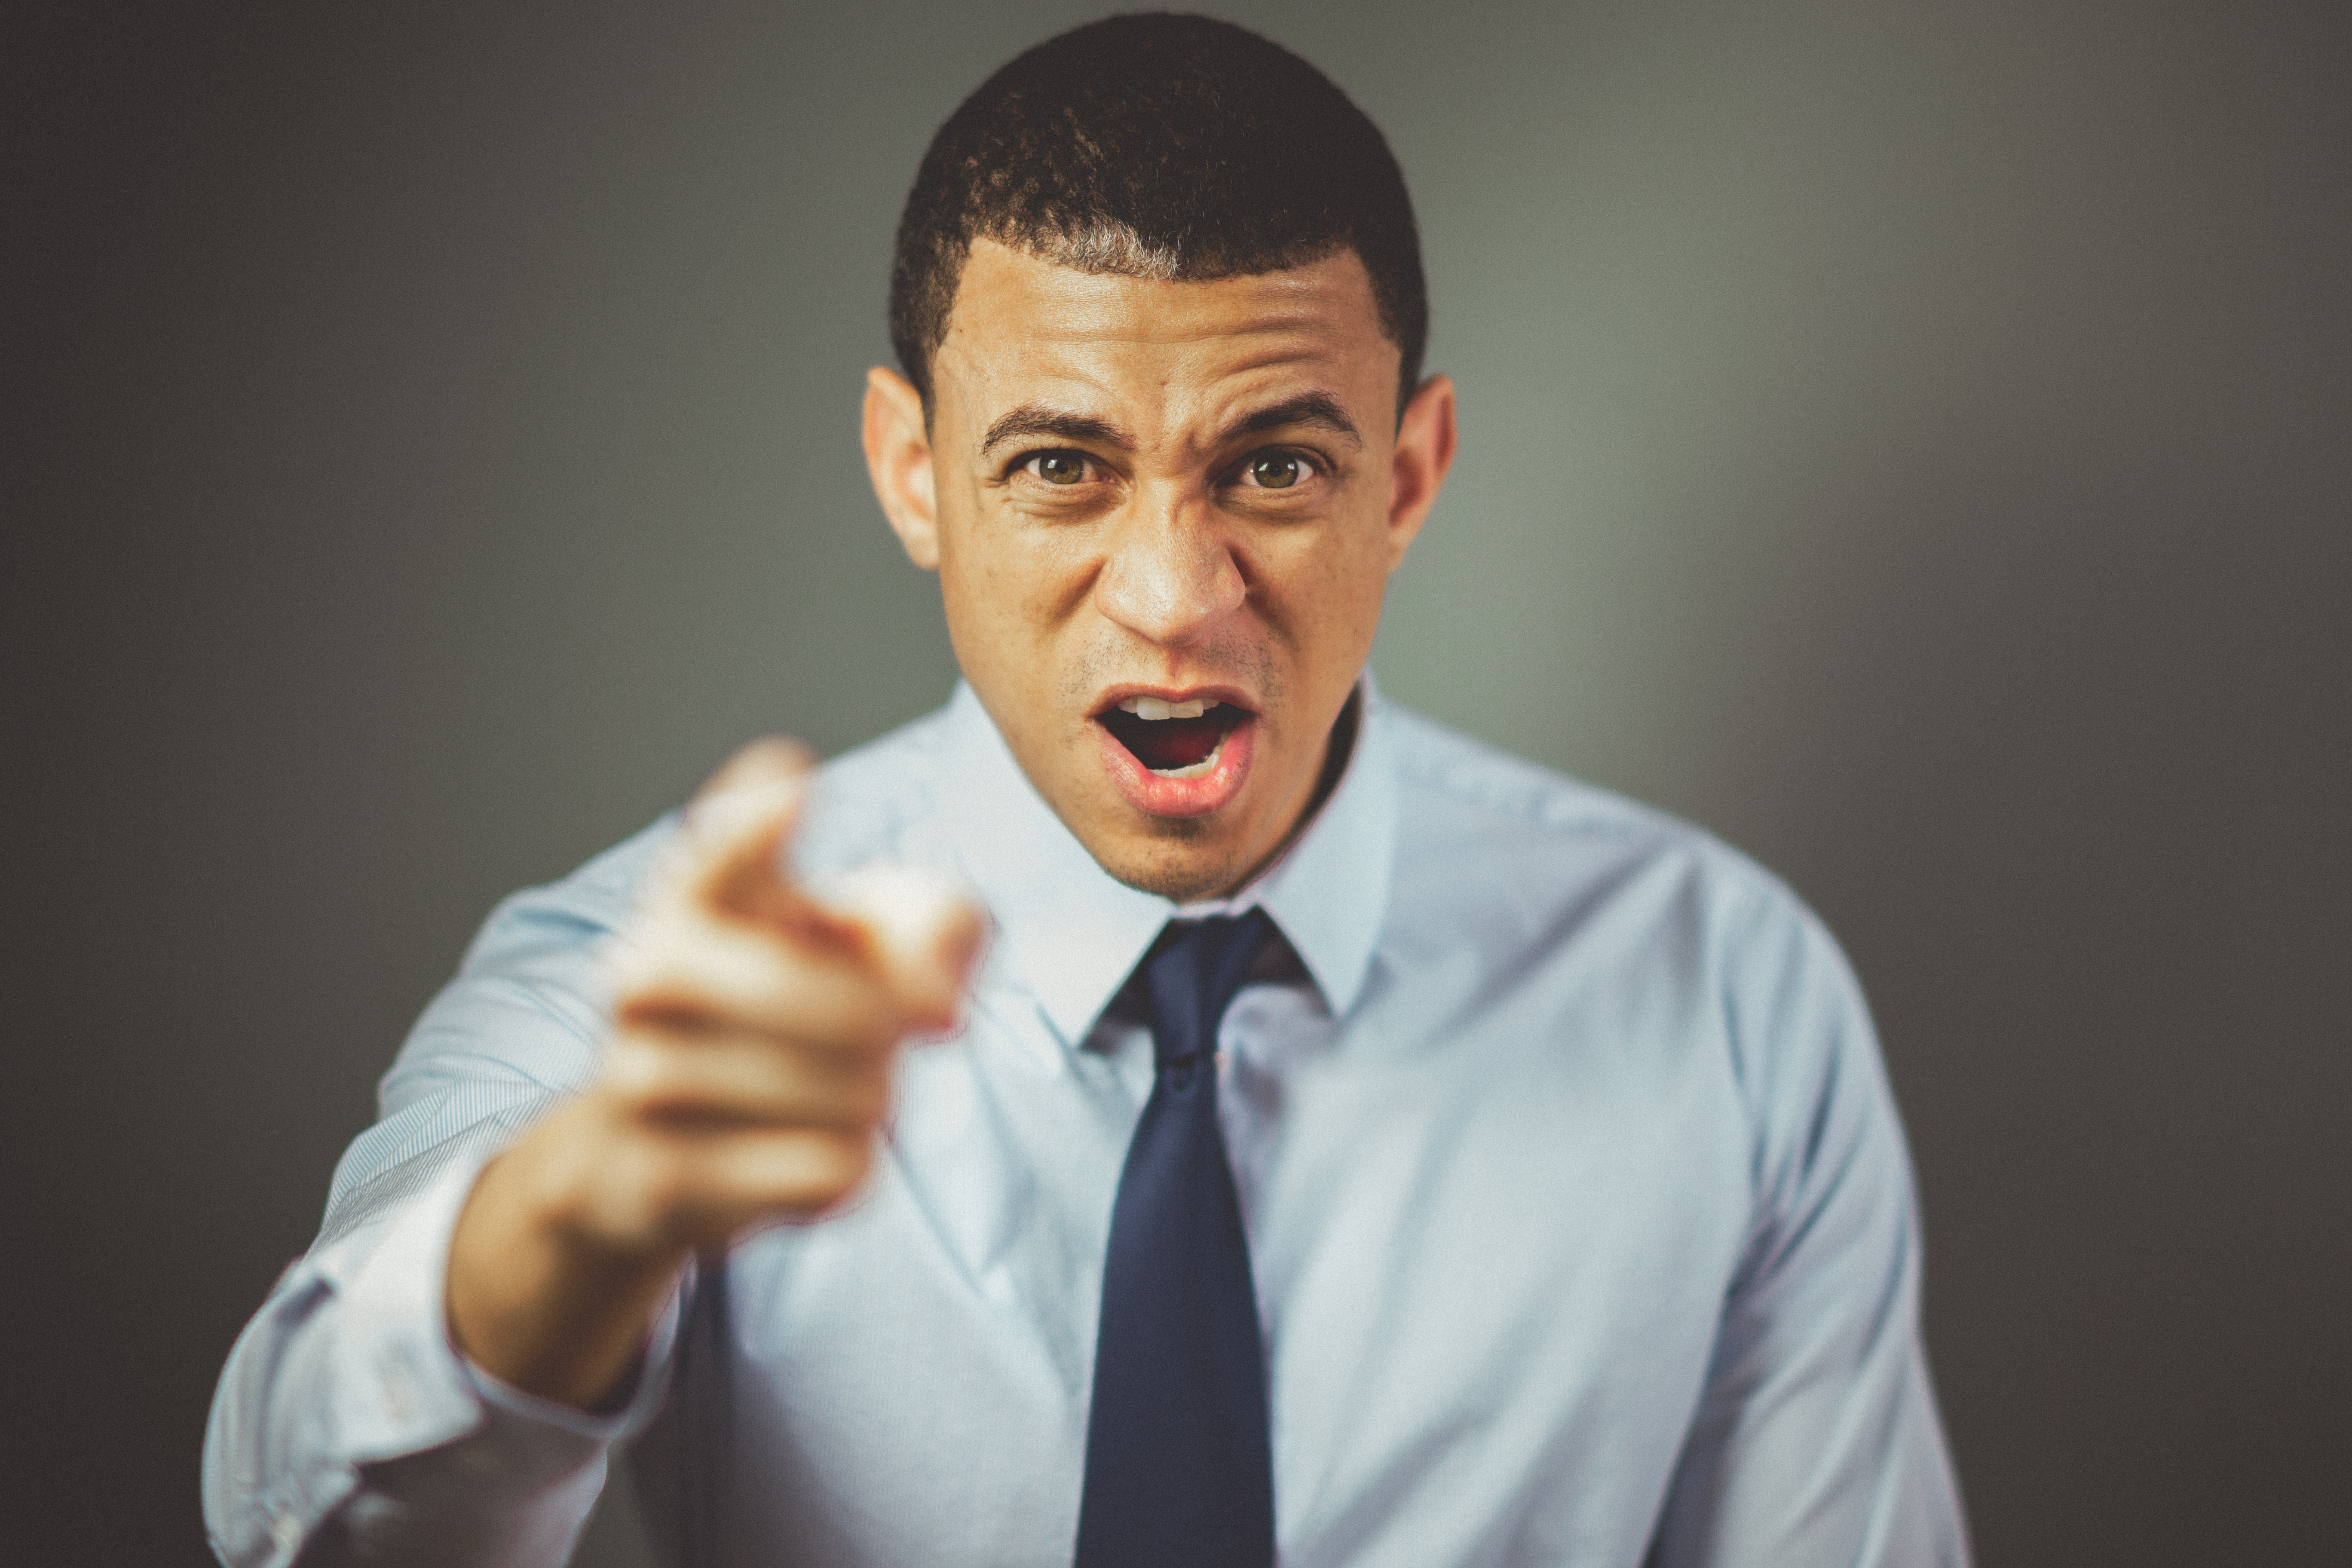 Angry man wearing white dress shirt with black necktie. | Photo: Pexels